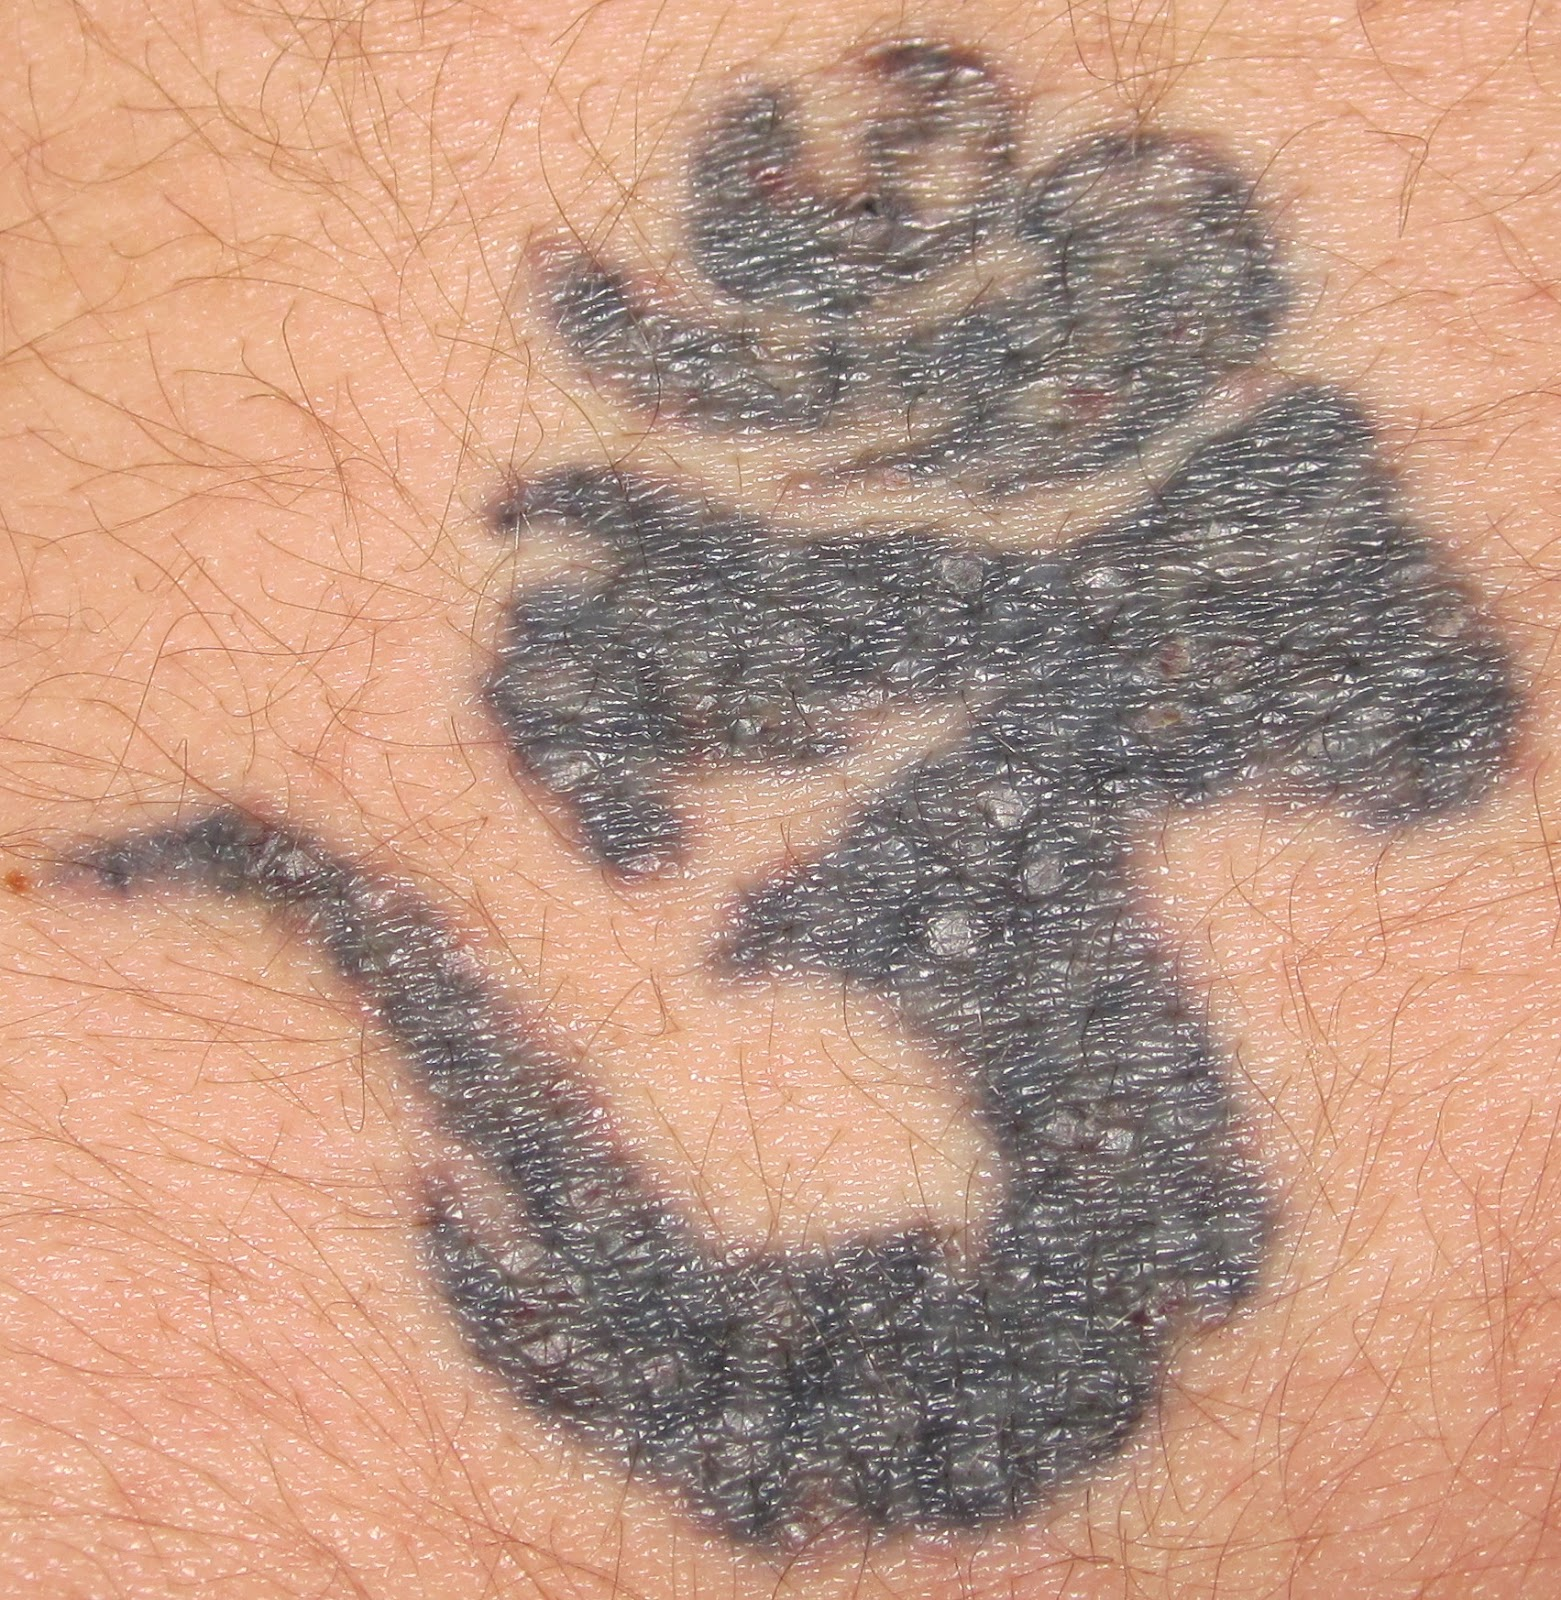 How Much Is Laser Tattoo Removal